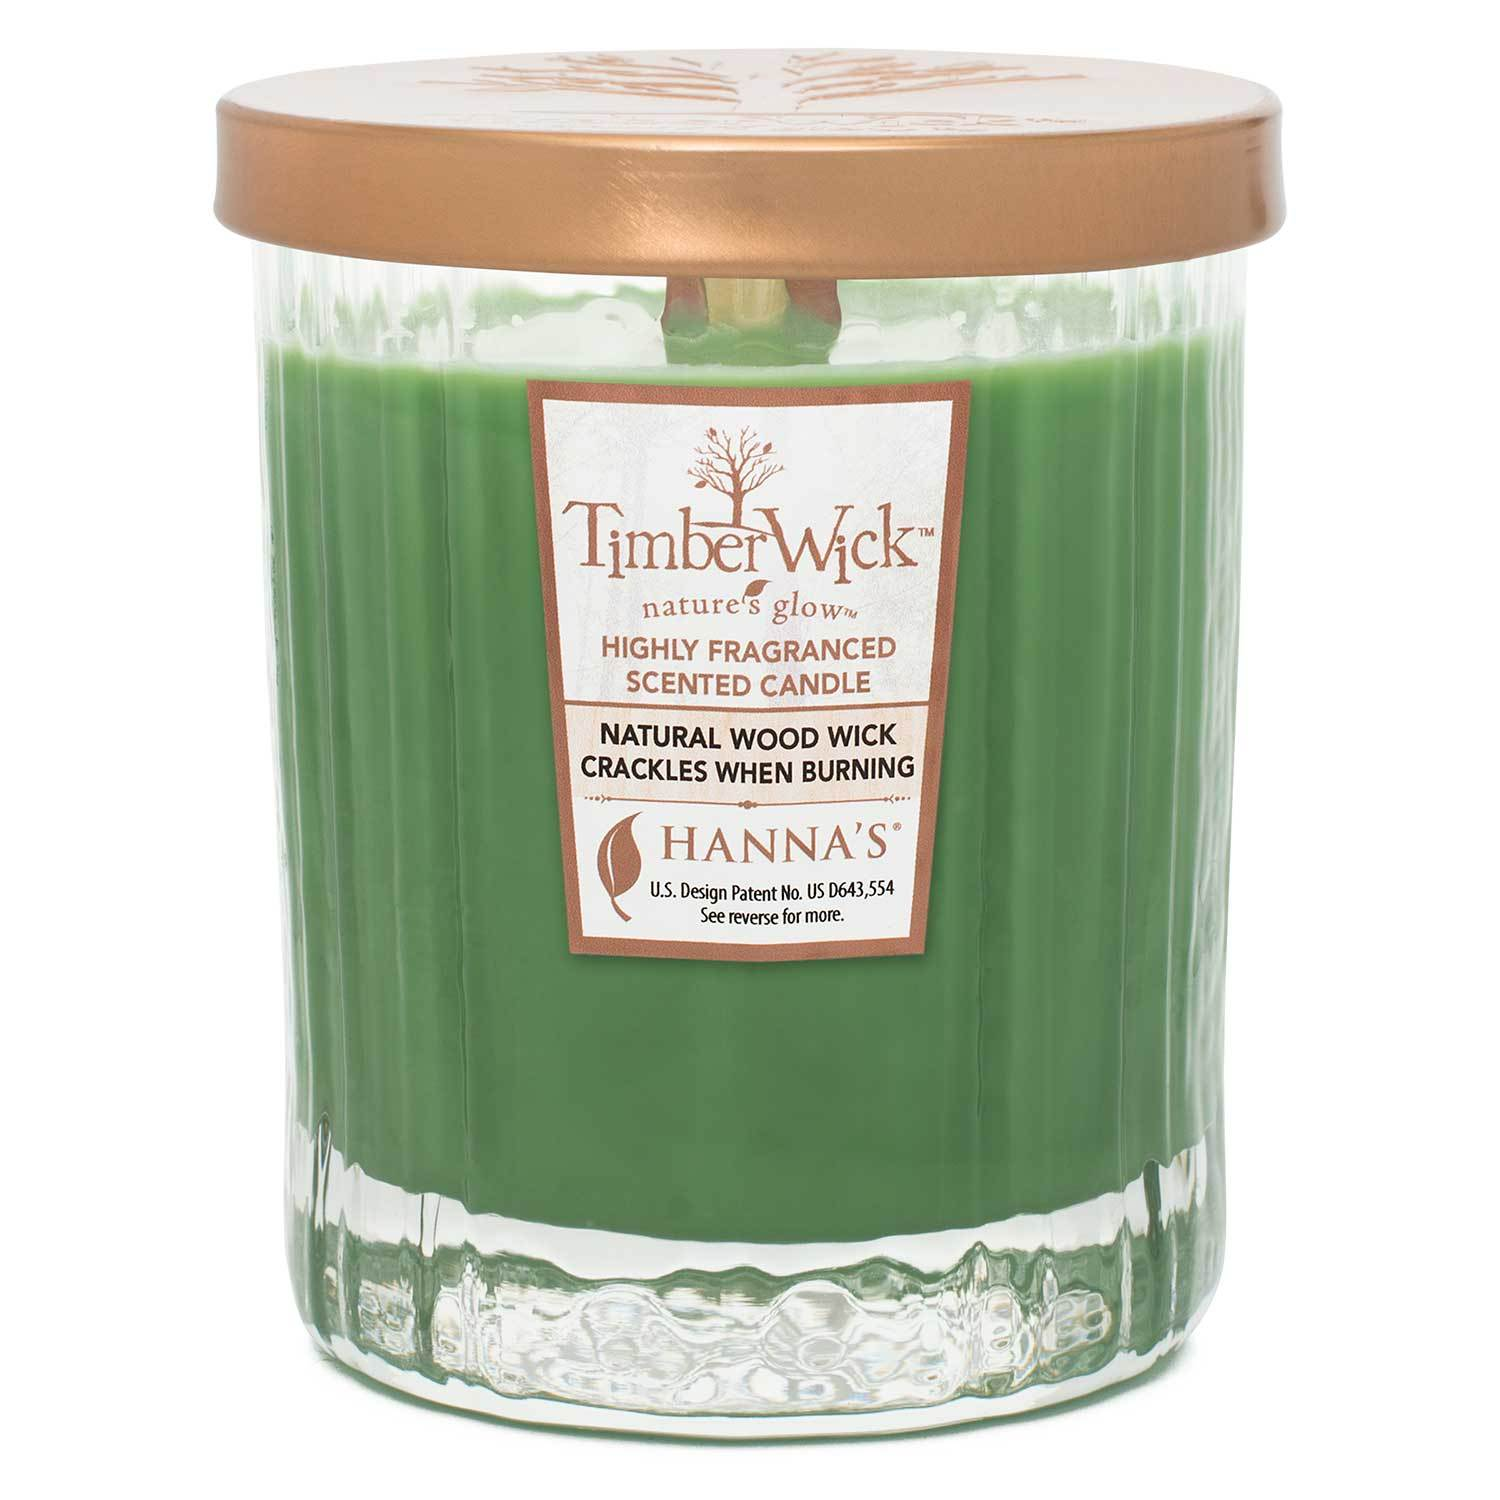 Timberwick Through The Woods Scented Wax Textured Tumbler Candle